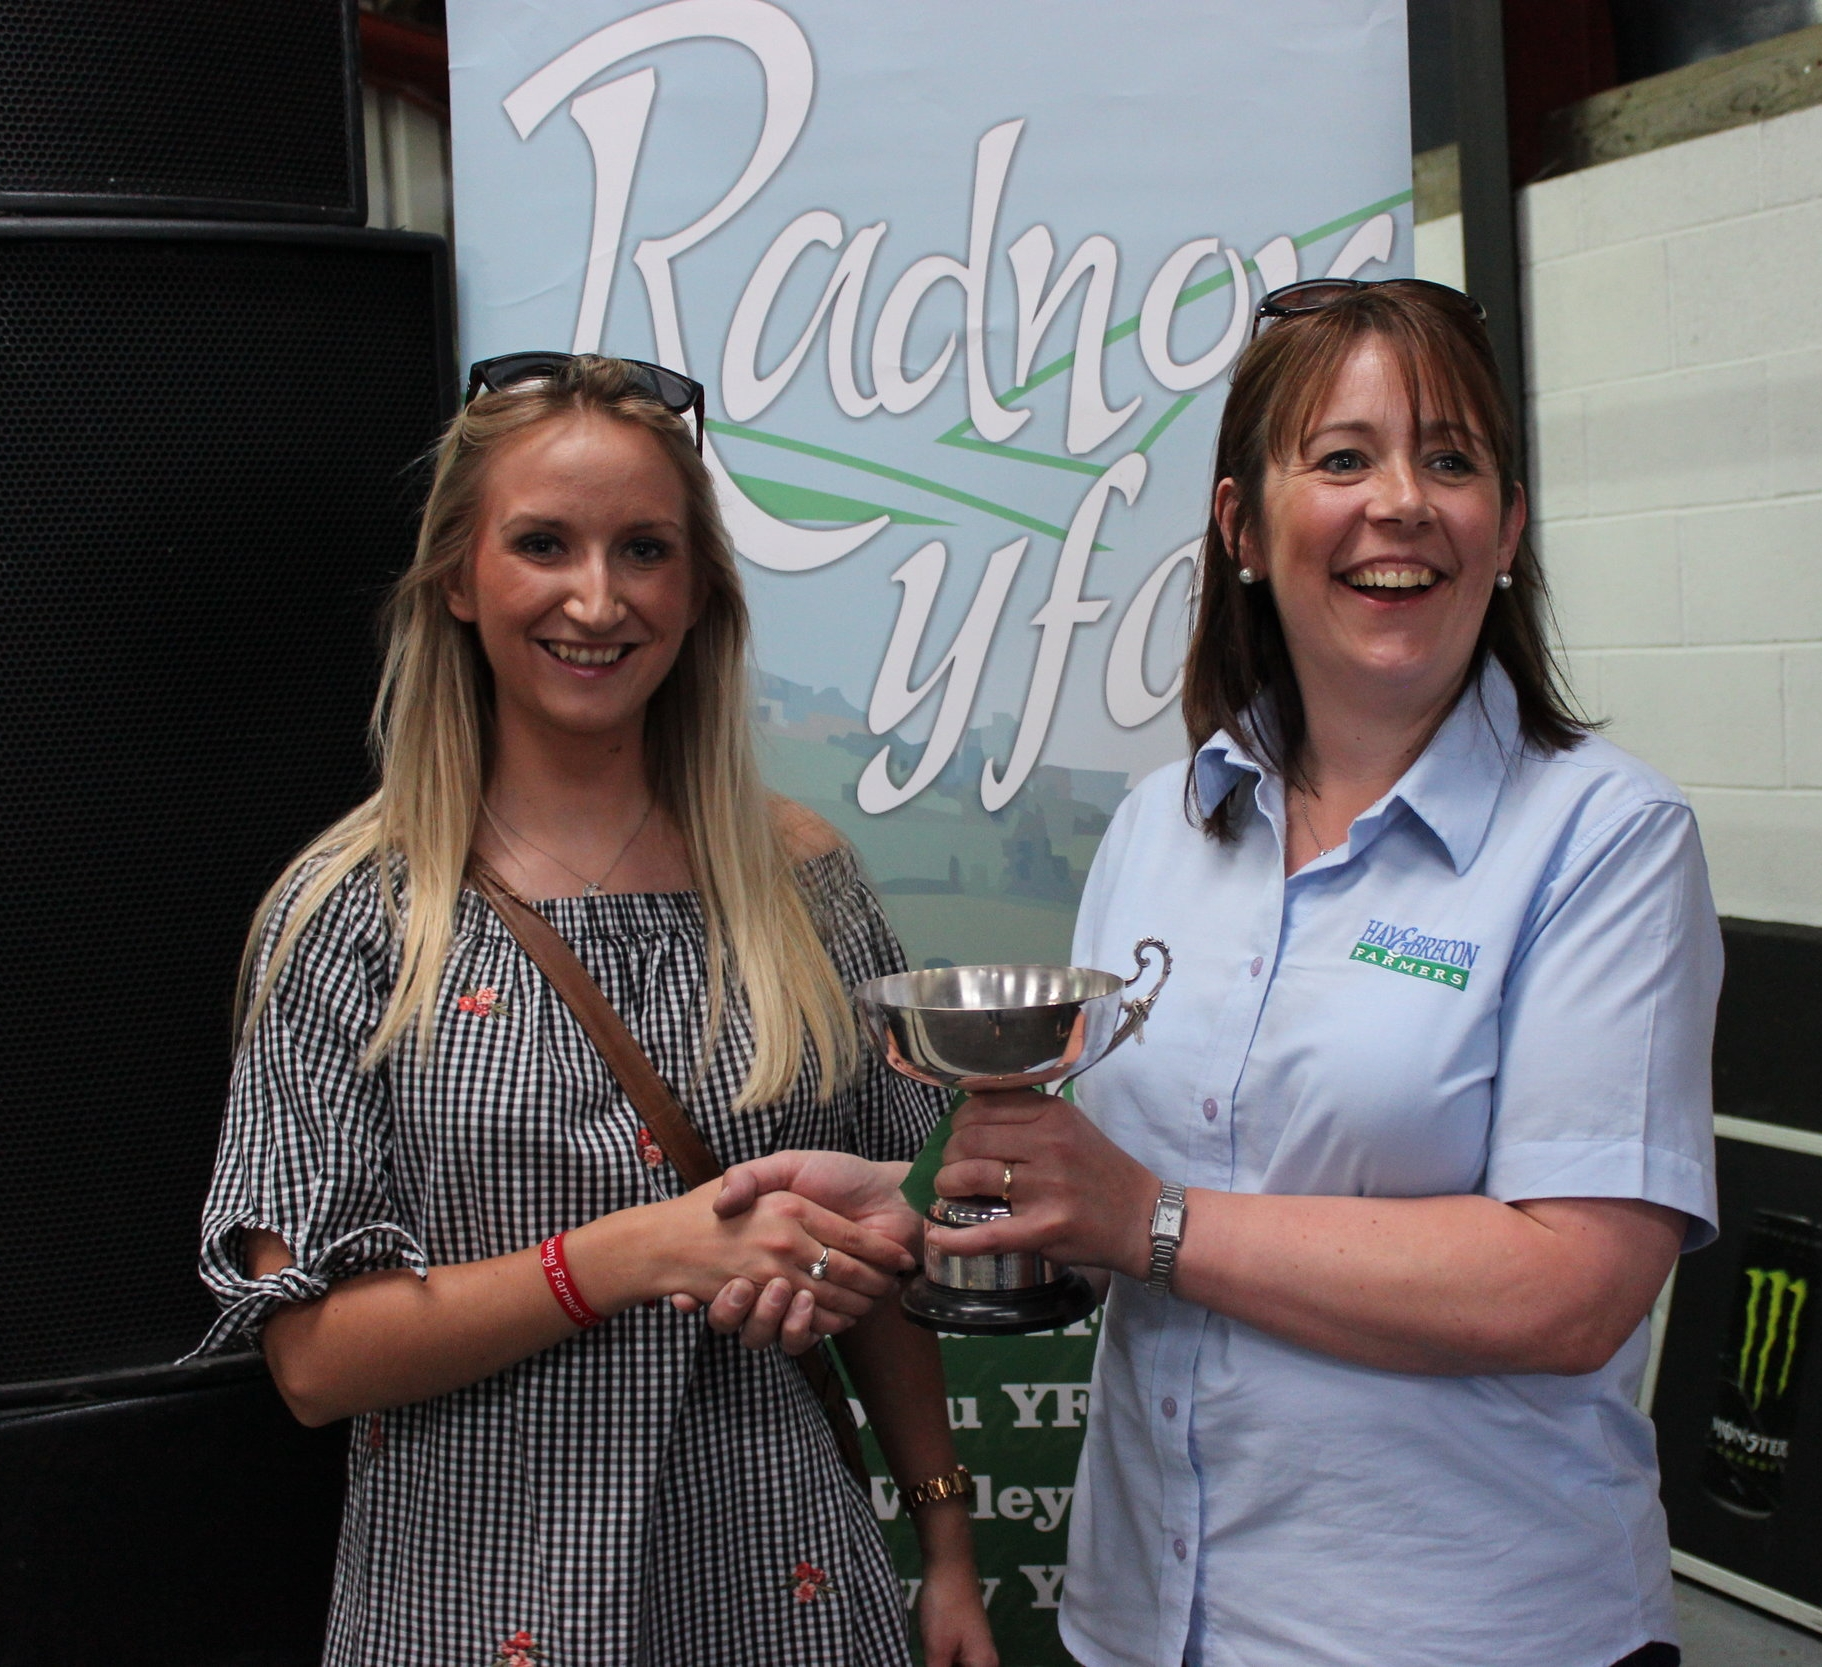 Anna Rogers, Presteigne YFC - Glenda Lawrence Cup / Pre Rally Promotional Sign Competition